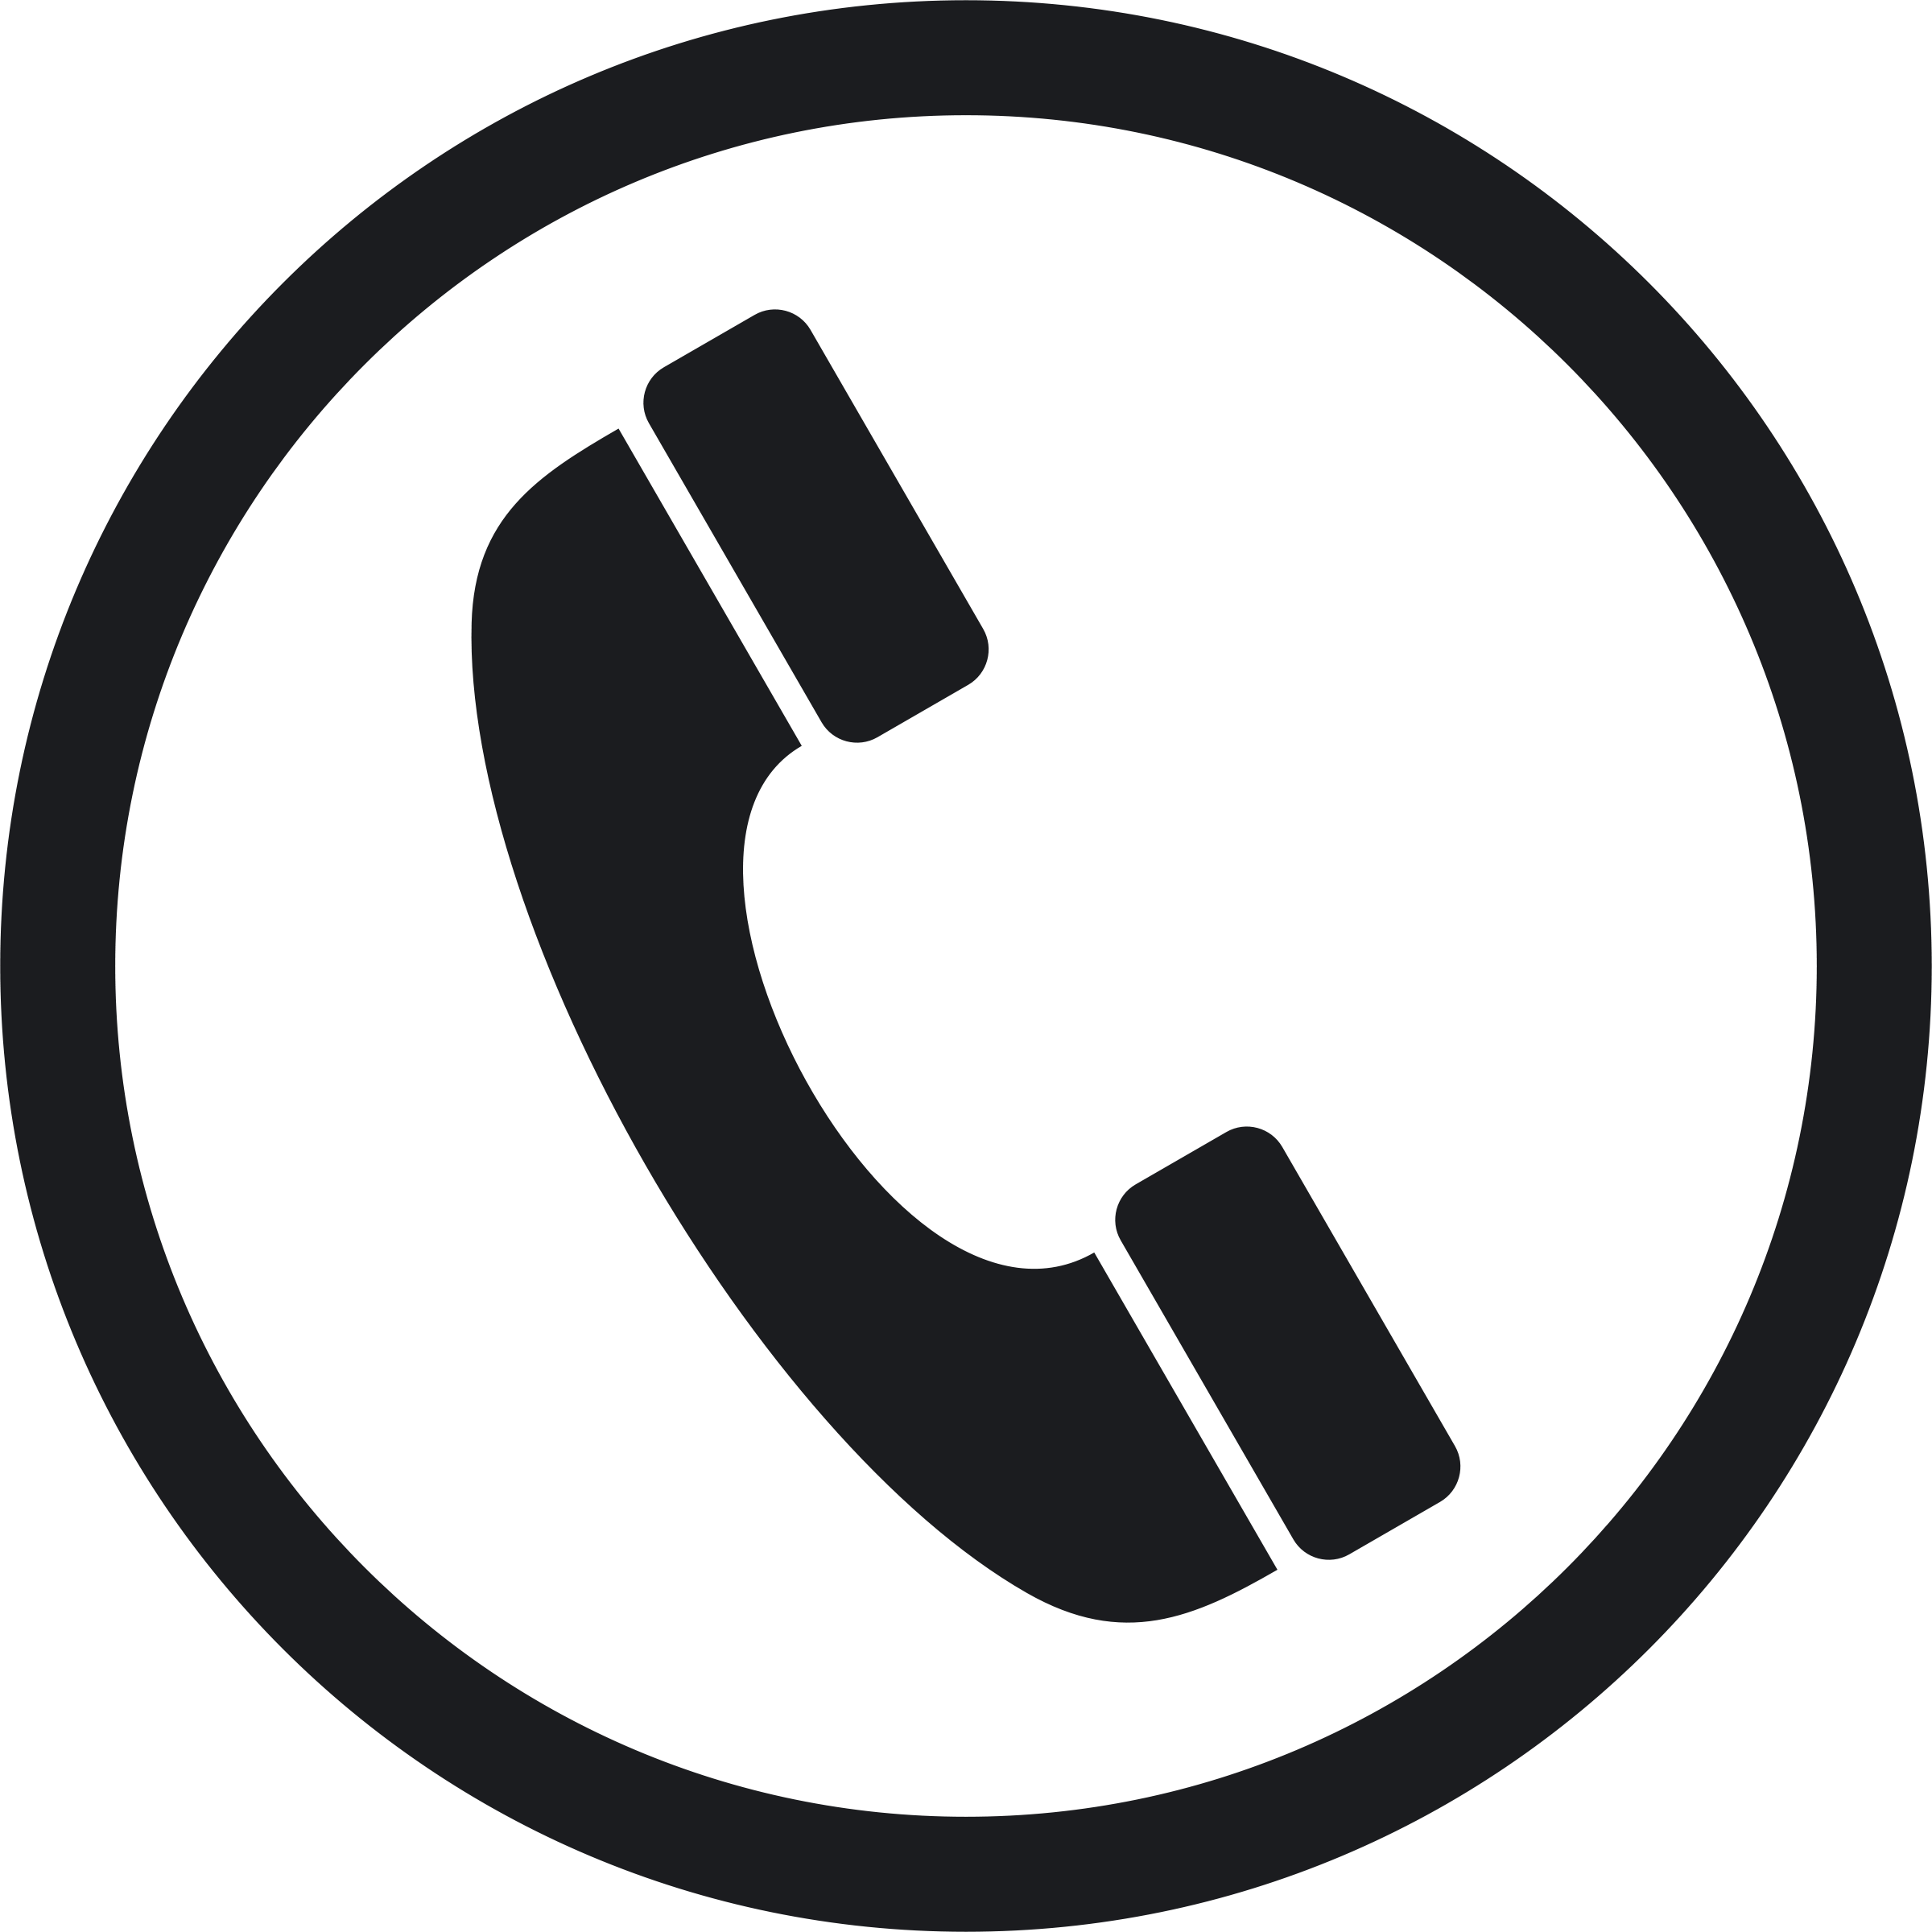 Vector interview phone. Technical graphic symbol types